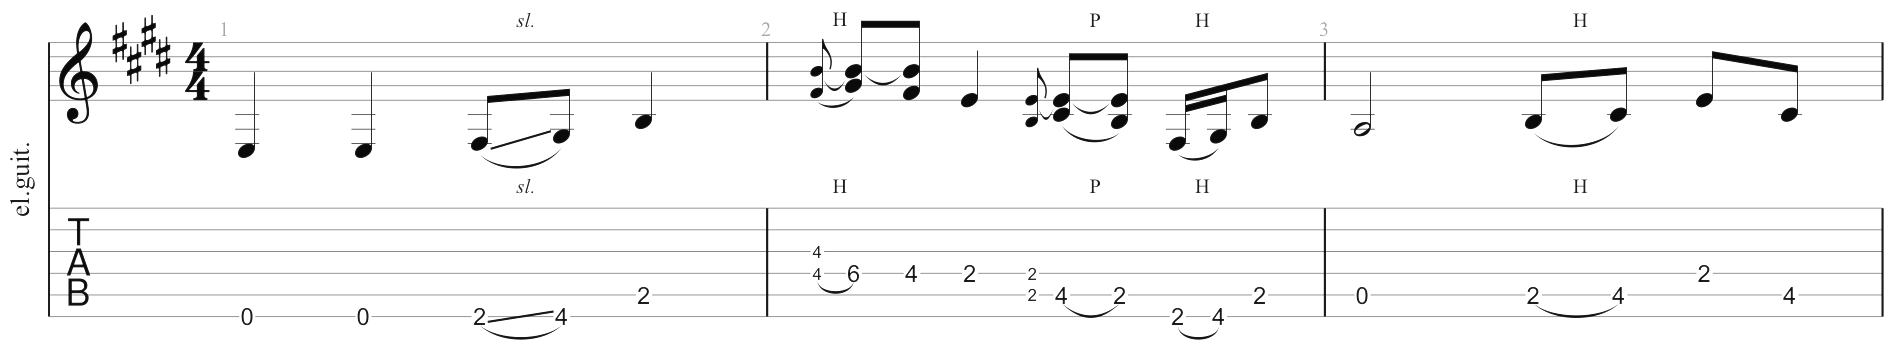 5 Easy Licks in the Style of Jimi Hendrix | Guitar Pro Blog – Arobas